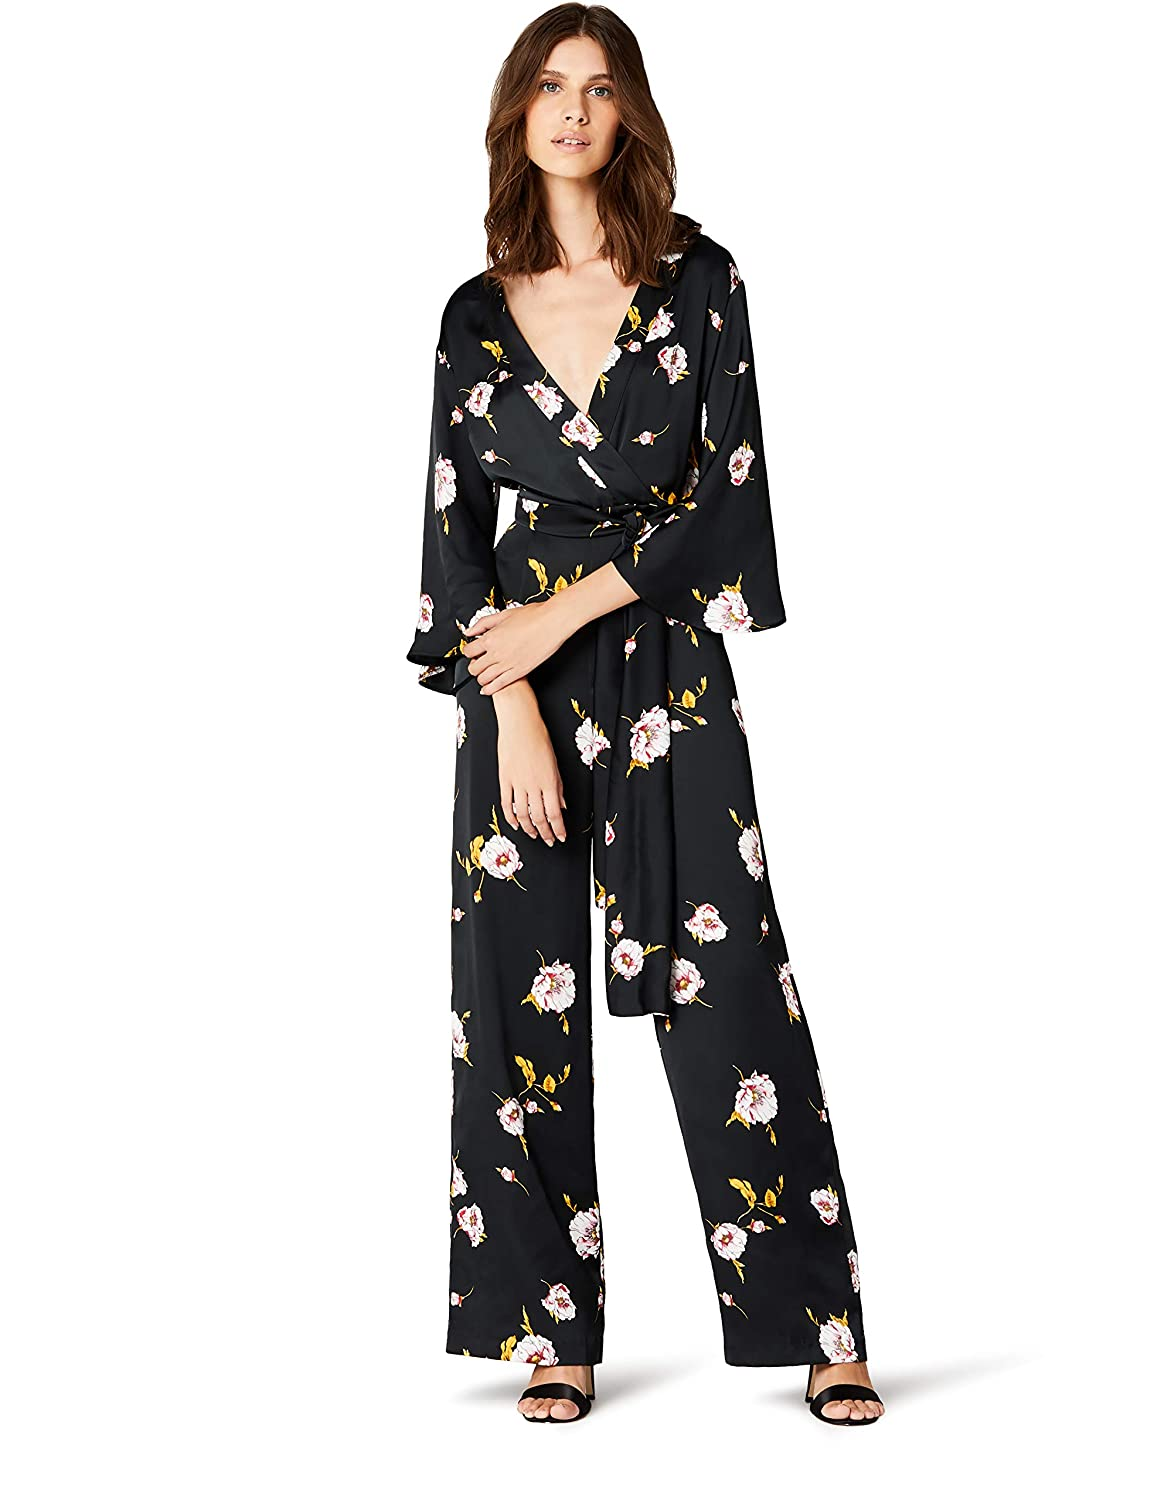 TALLA 38 (Talla del fabricante: Small). Marca Amazon - TRUTH & FABLE Mono Largo Estilo Kimono Mujer